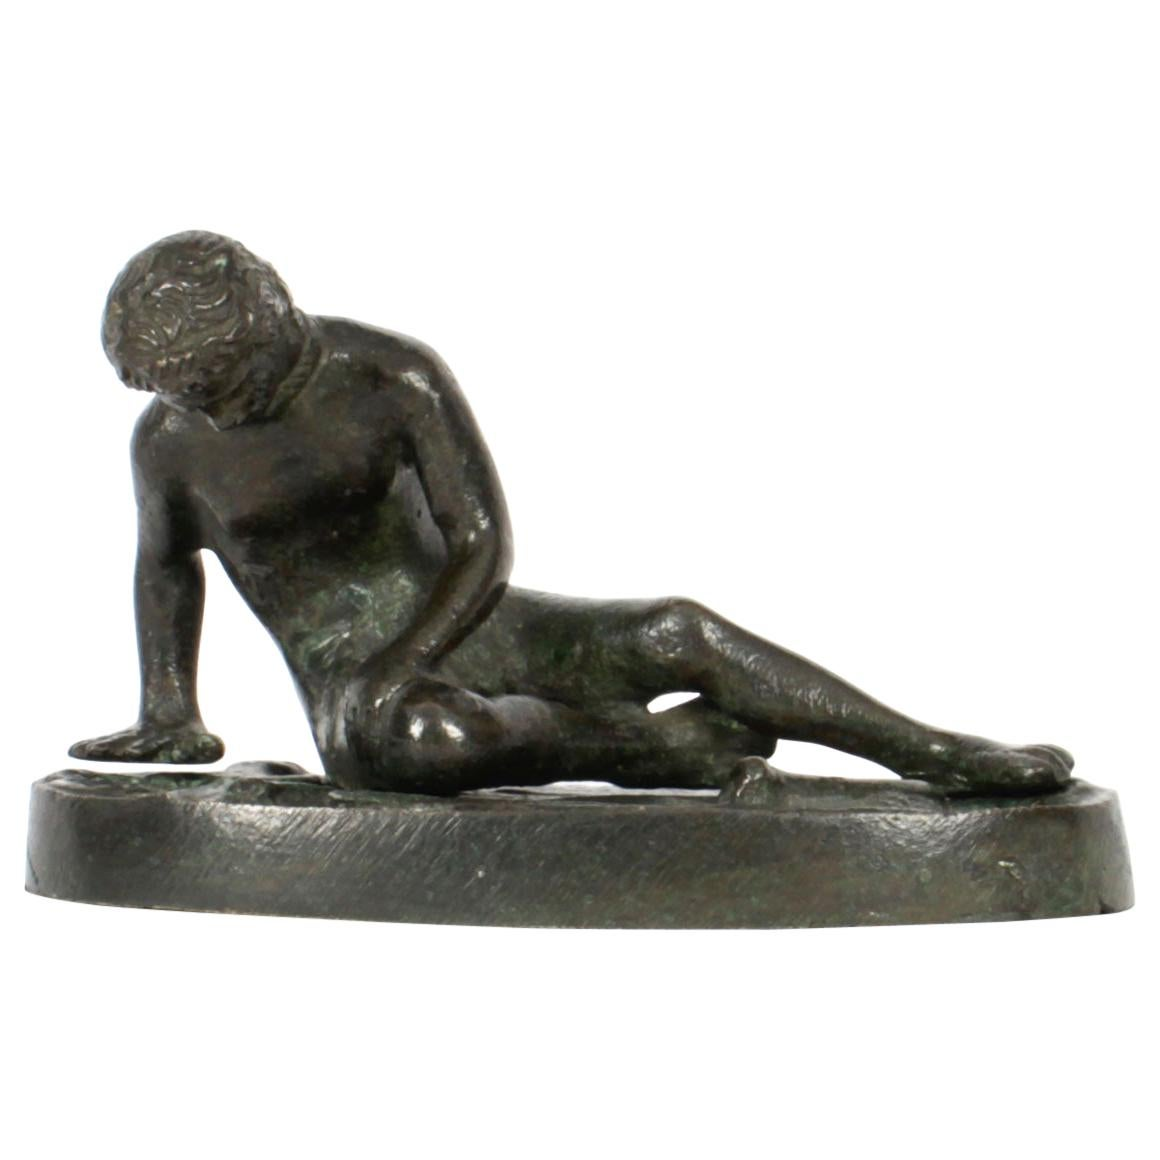 Antique Italian Grand Tour Bronze Sculpture of The Dying Gaul 19th C